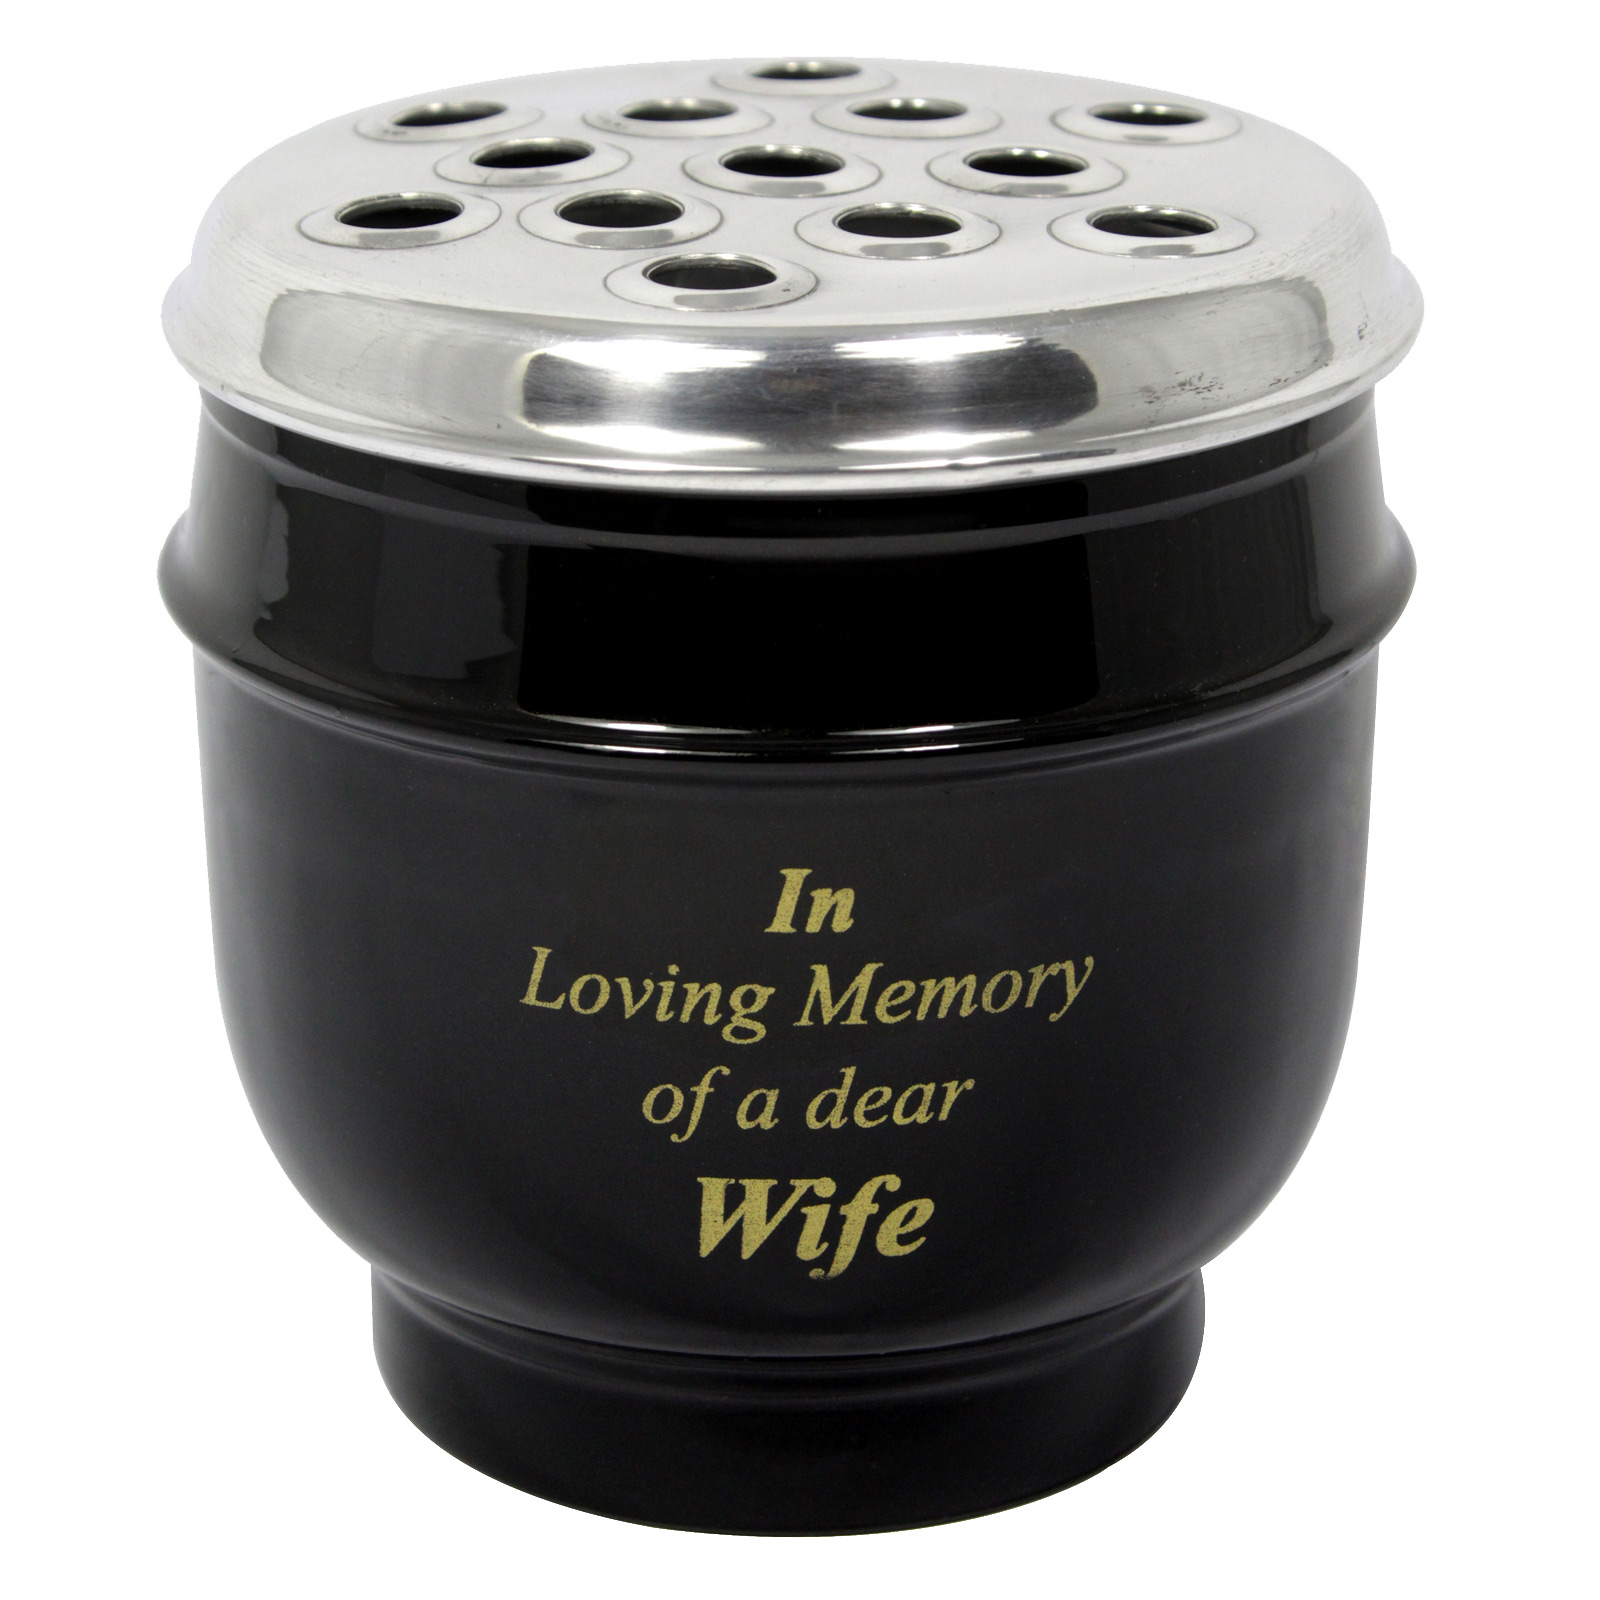 METAL GRAVE VASE BLACK WITH SILVER LID IN LOVING MEMORY OF A DEAR WIFE 14CM